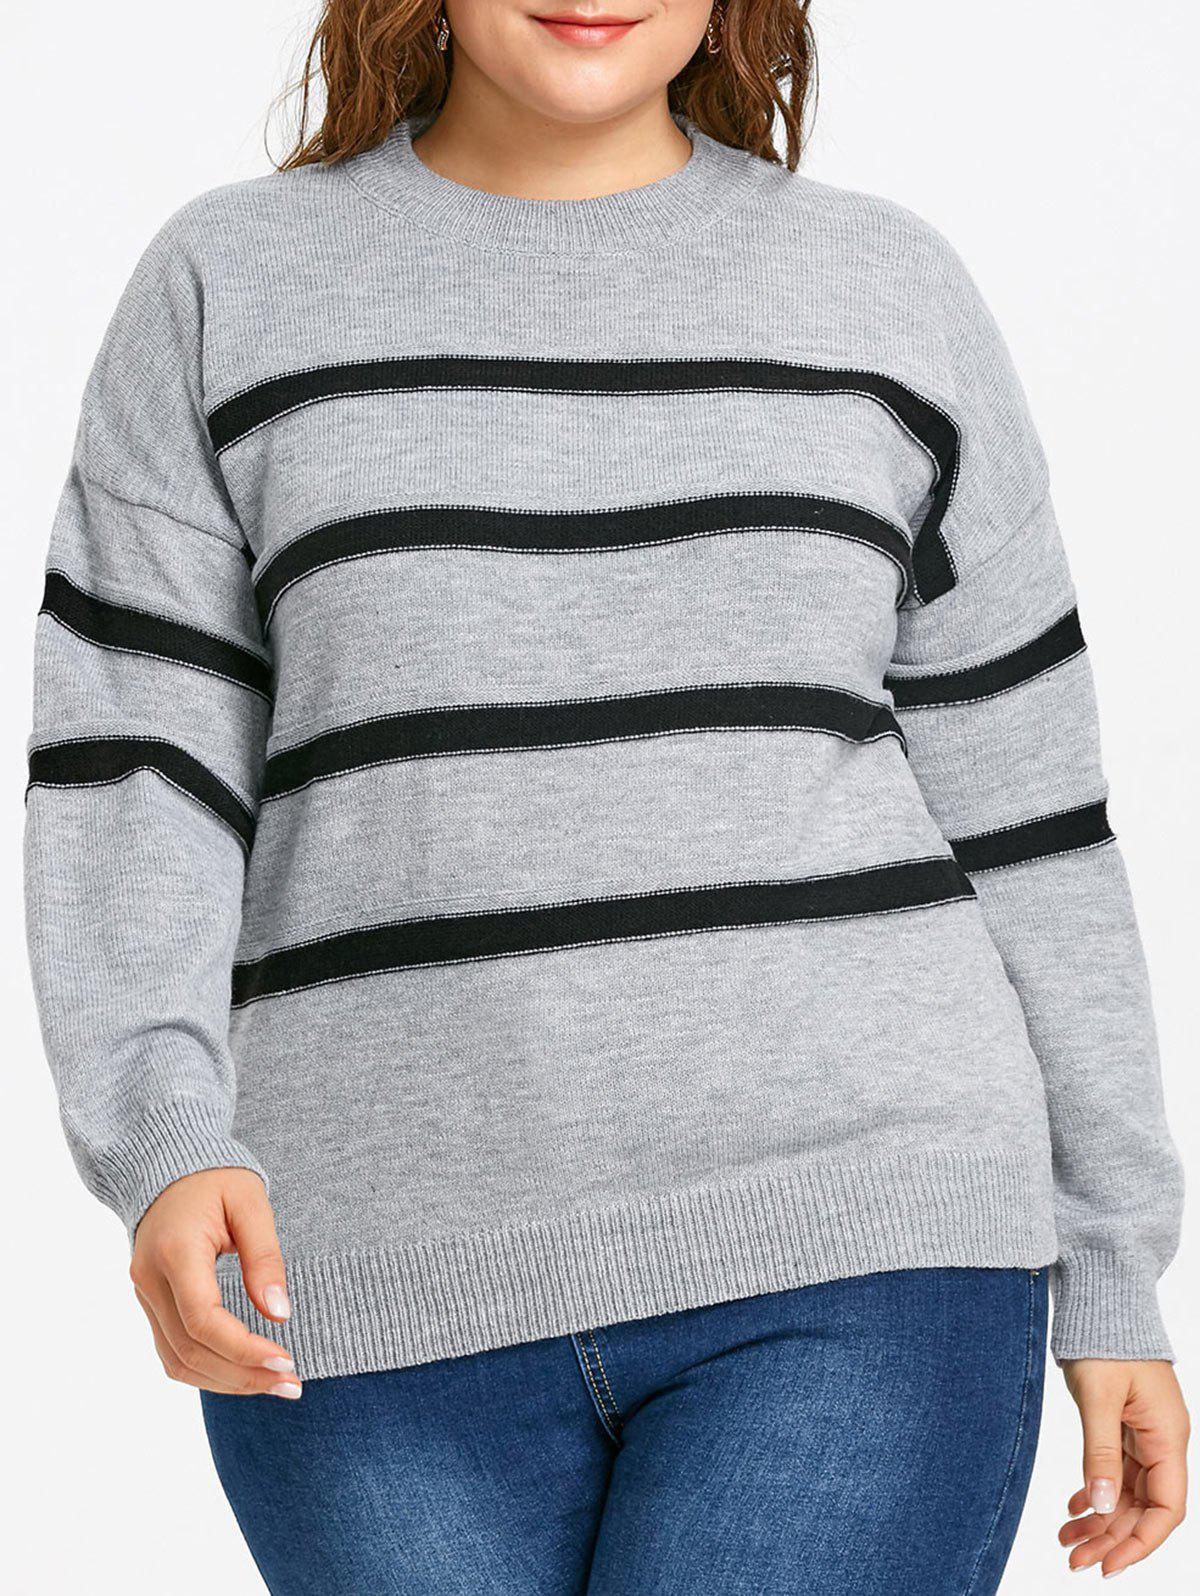 Chic Plus Size Drop Shoulder Striped Jumper Sweater